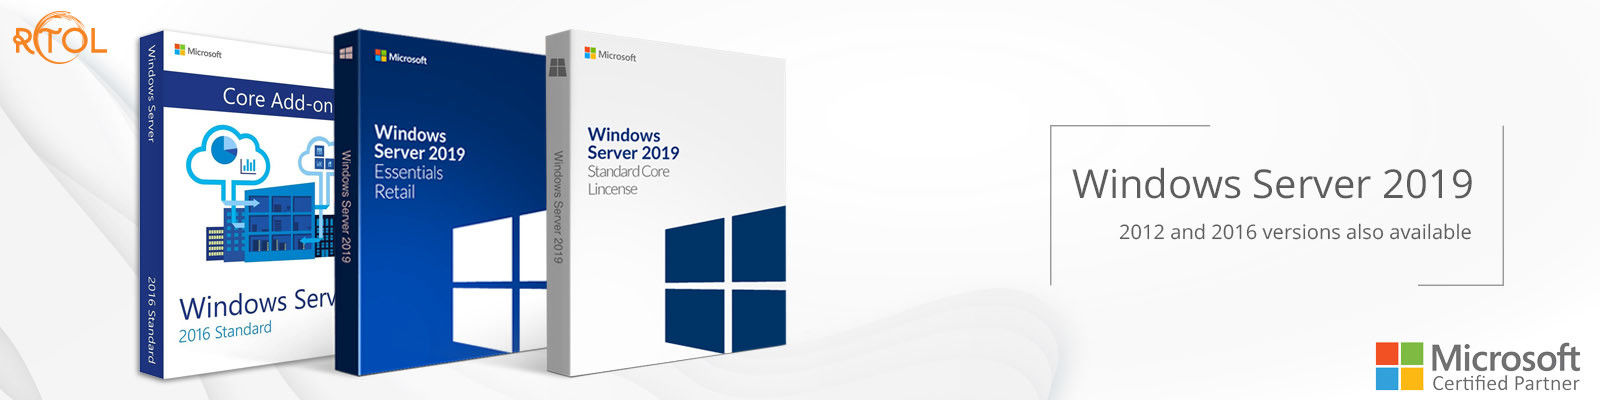 Code principal de produit de Windows